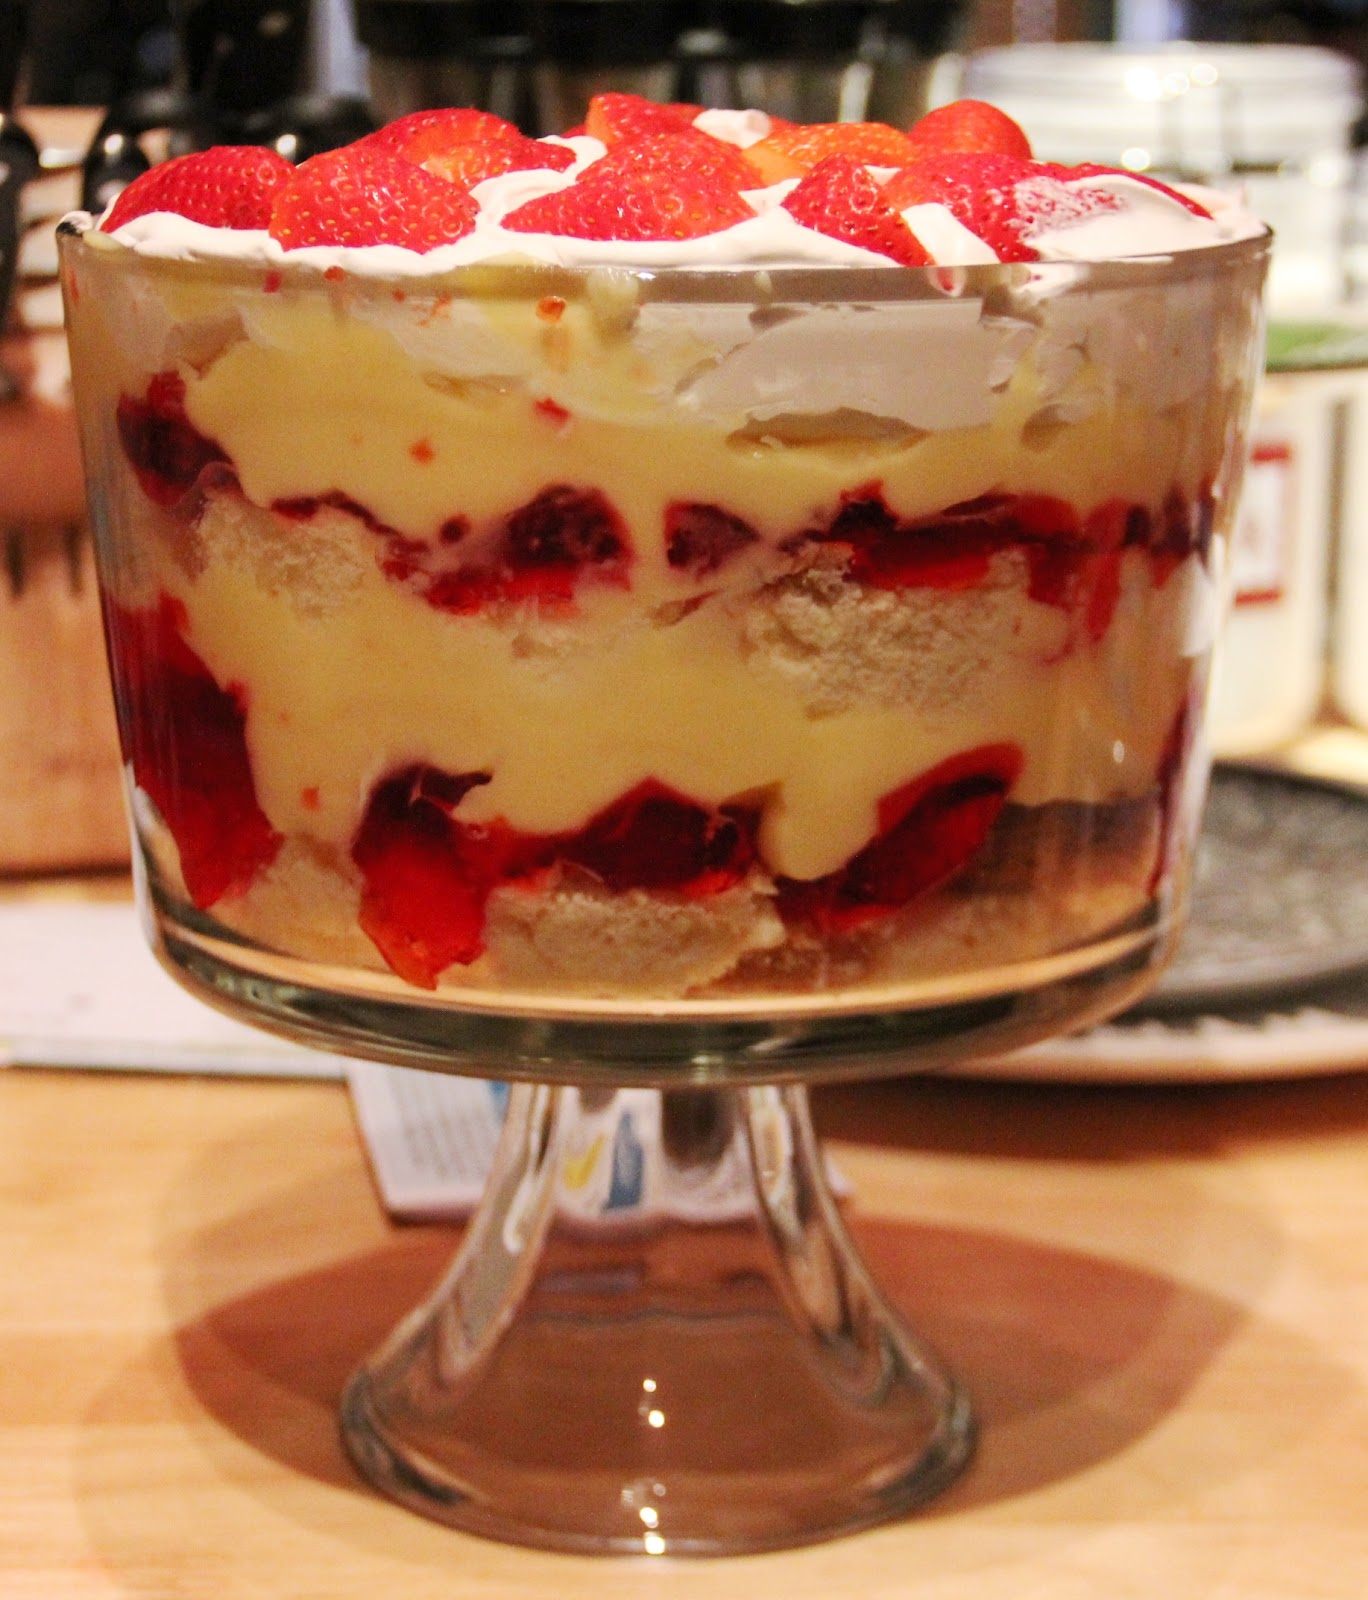 Strawberry Trifle My Way {Delightful Morsel}